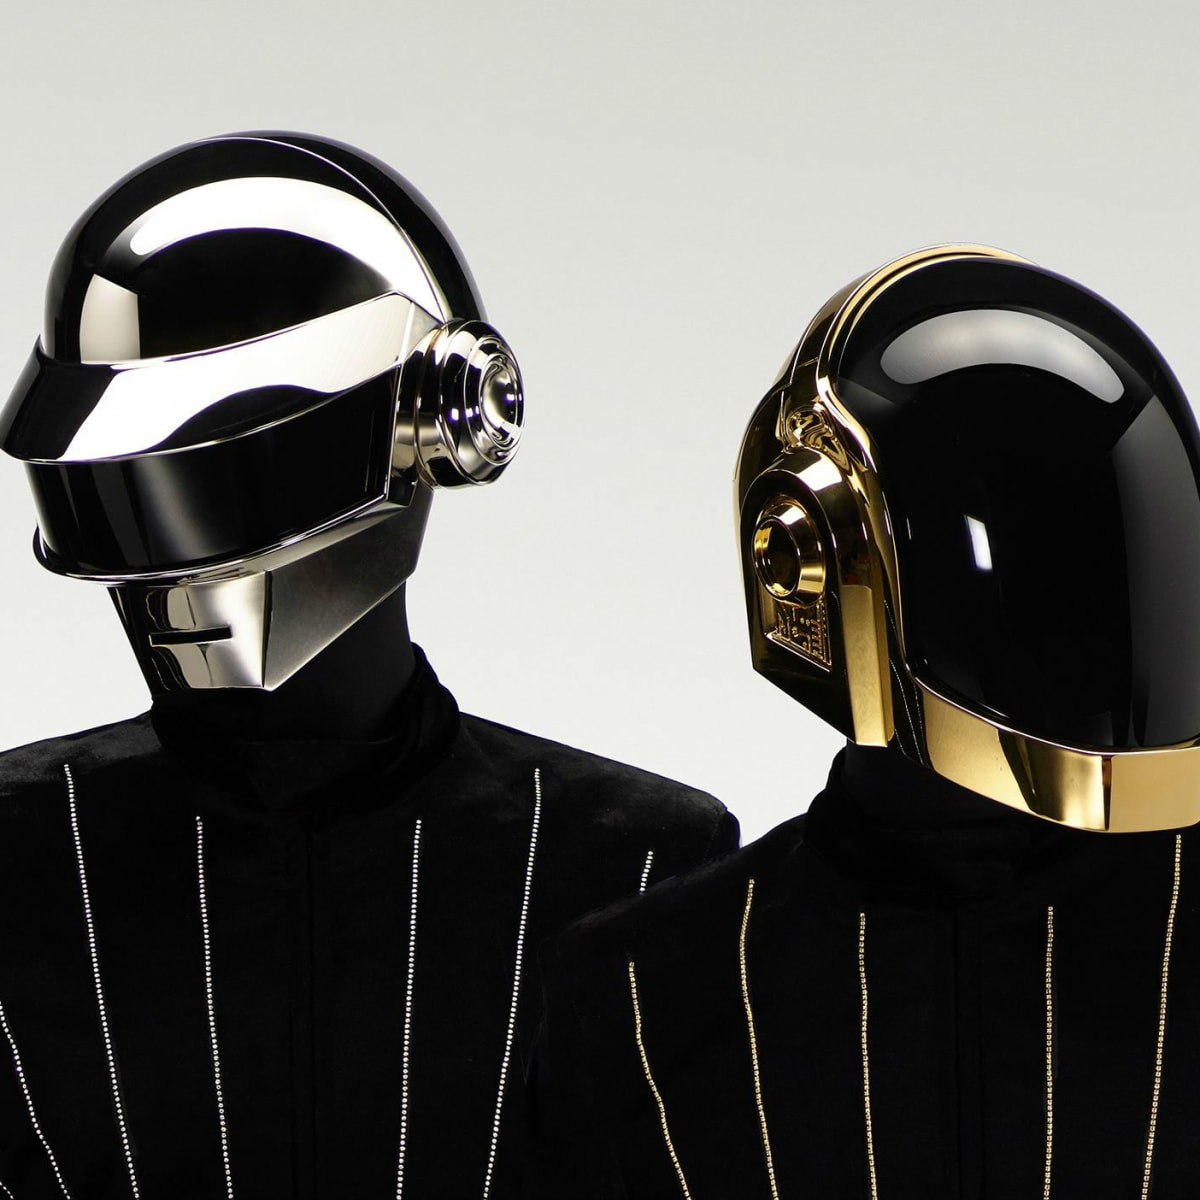 Apparent Daft Punk Leak Suggests A 2020 Album Is On The Way Edm Com The Latest Electronic Dance Music News Reviews Artists